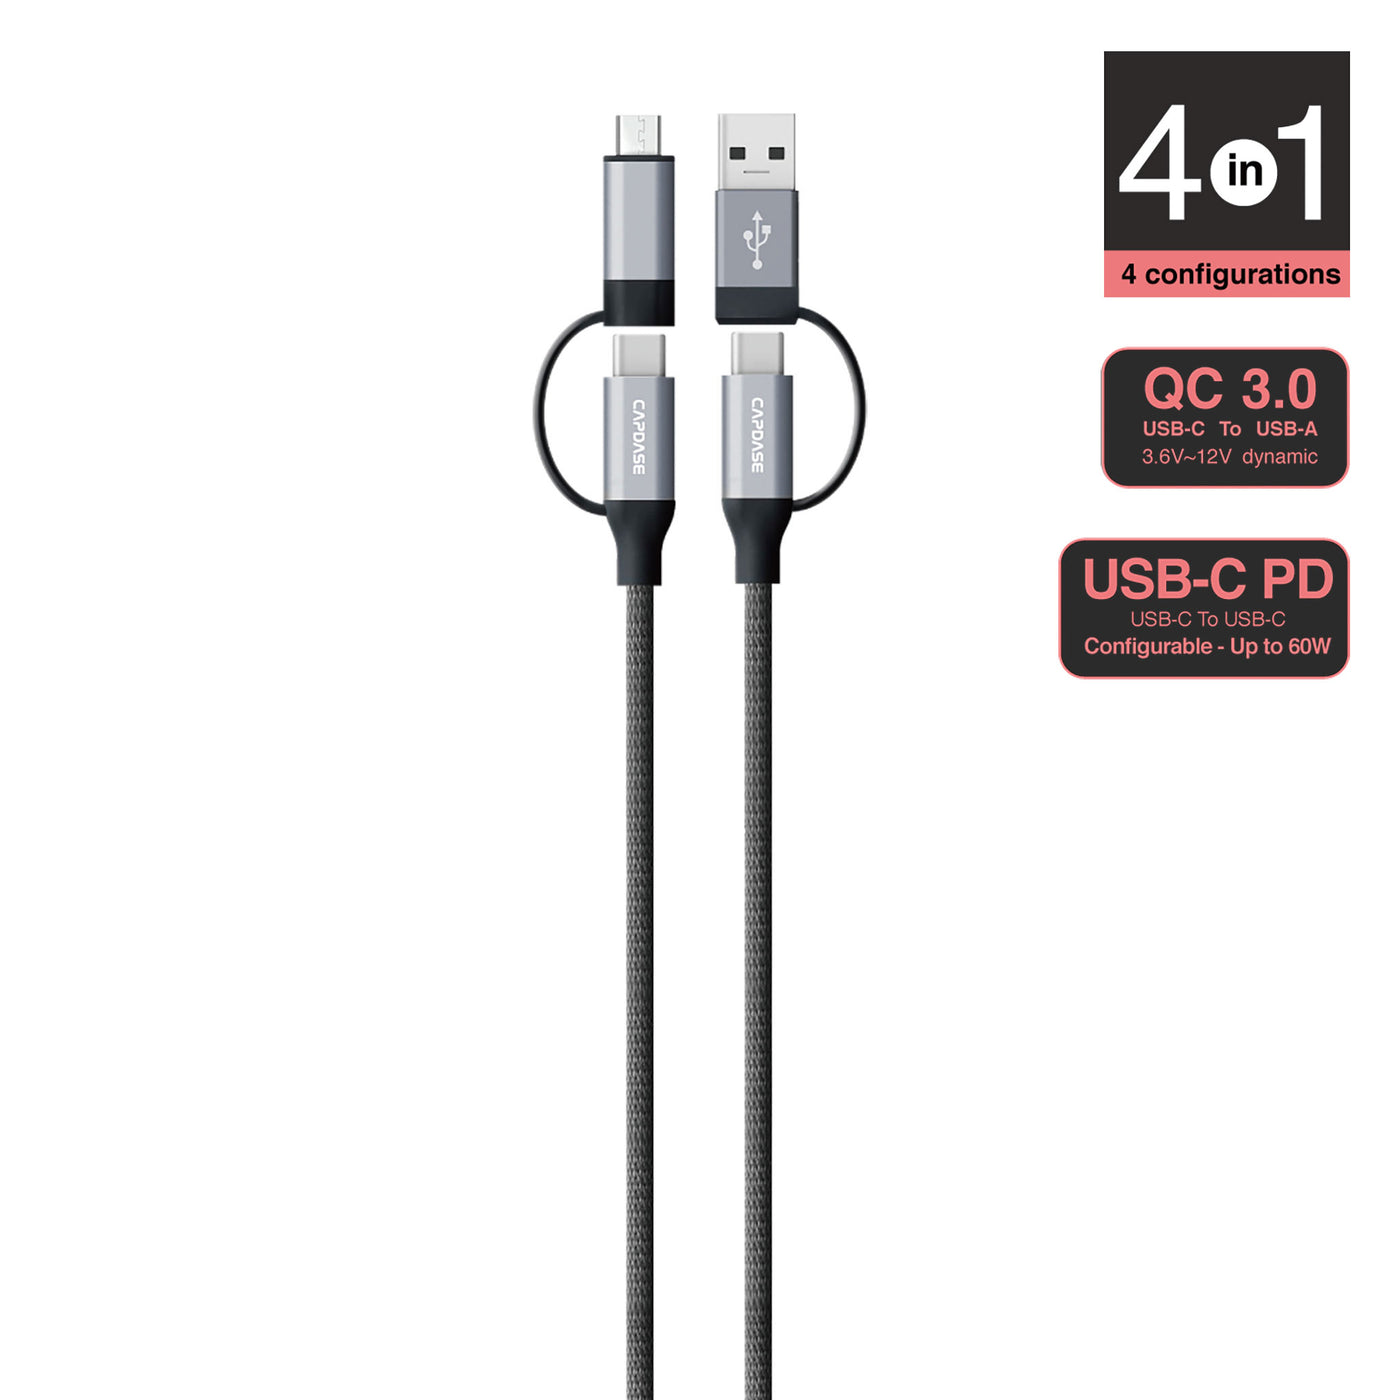 METALLIC AM-CL 3 in 1 USB-A to Mirco USB Cable with